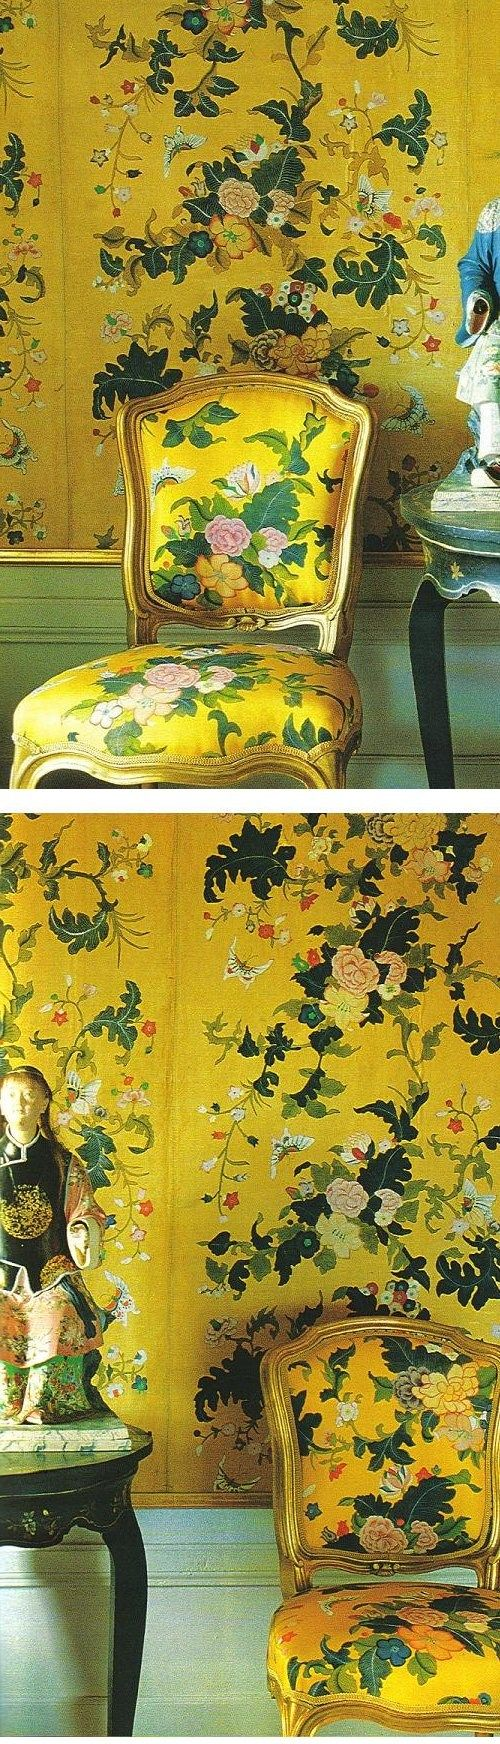 Chinese Pavilion Drottningholm featured in May 1996 World of Interiors